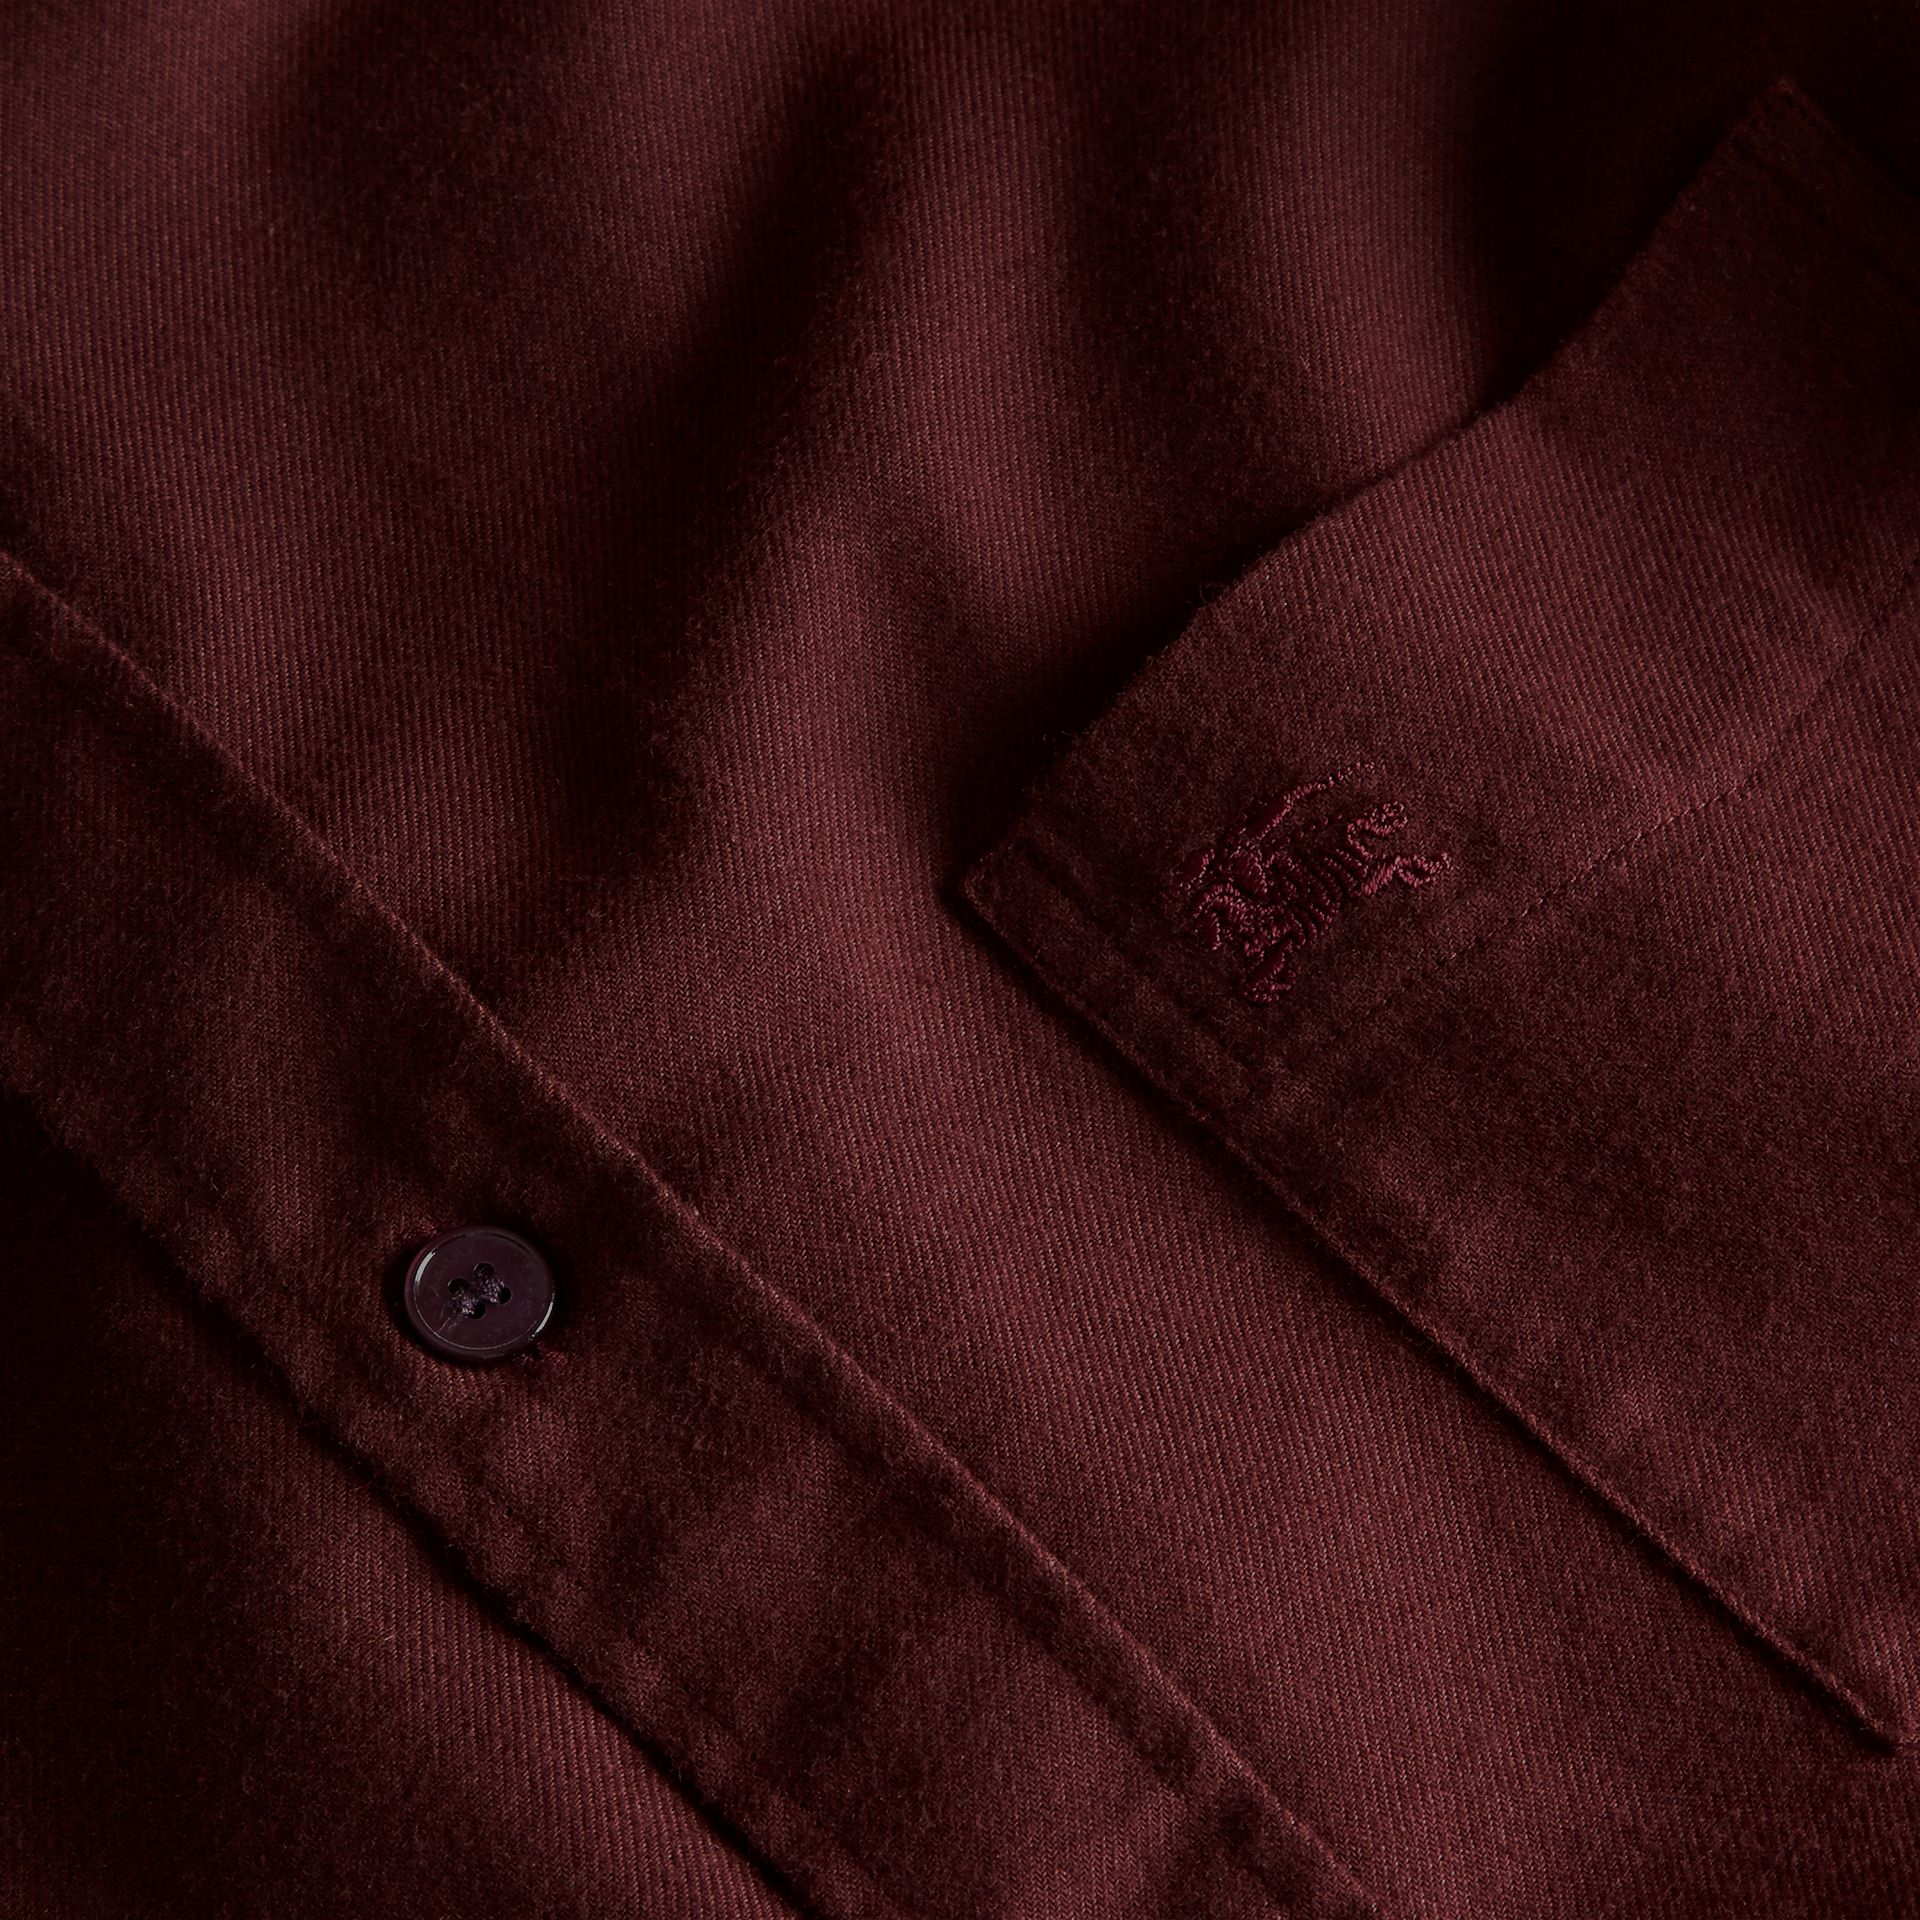 Dark elderberry Check Detail Cotton Flannel Shirt Dark Elderberry - gallery image 2